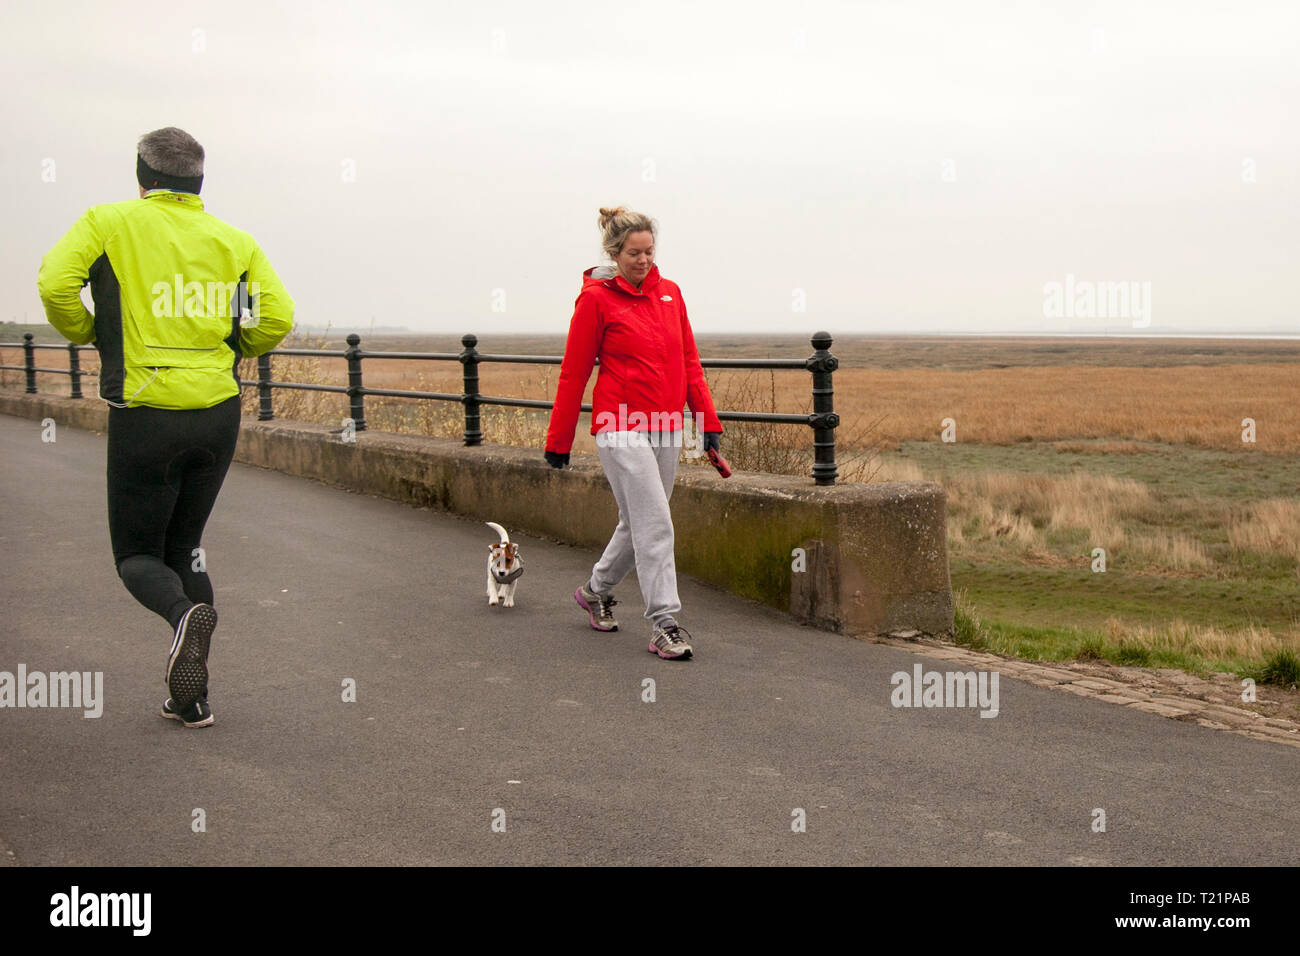 Lytham Saint Annes, Lancashire. 30th March, 2019. UK Weather. Bright outfits on a dull overcast day. Credit. MWI/AlamyLiveNews Credit: MediaWorldImages/Alamy Live News - Stock Image